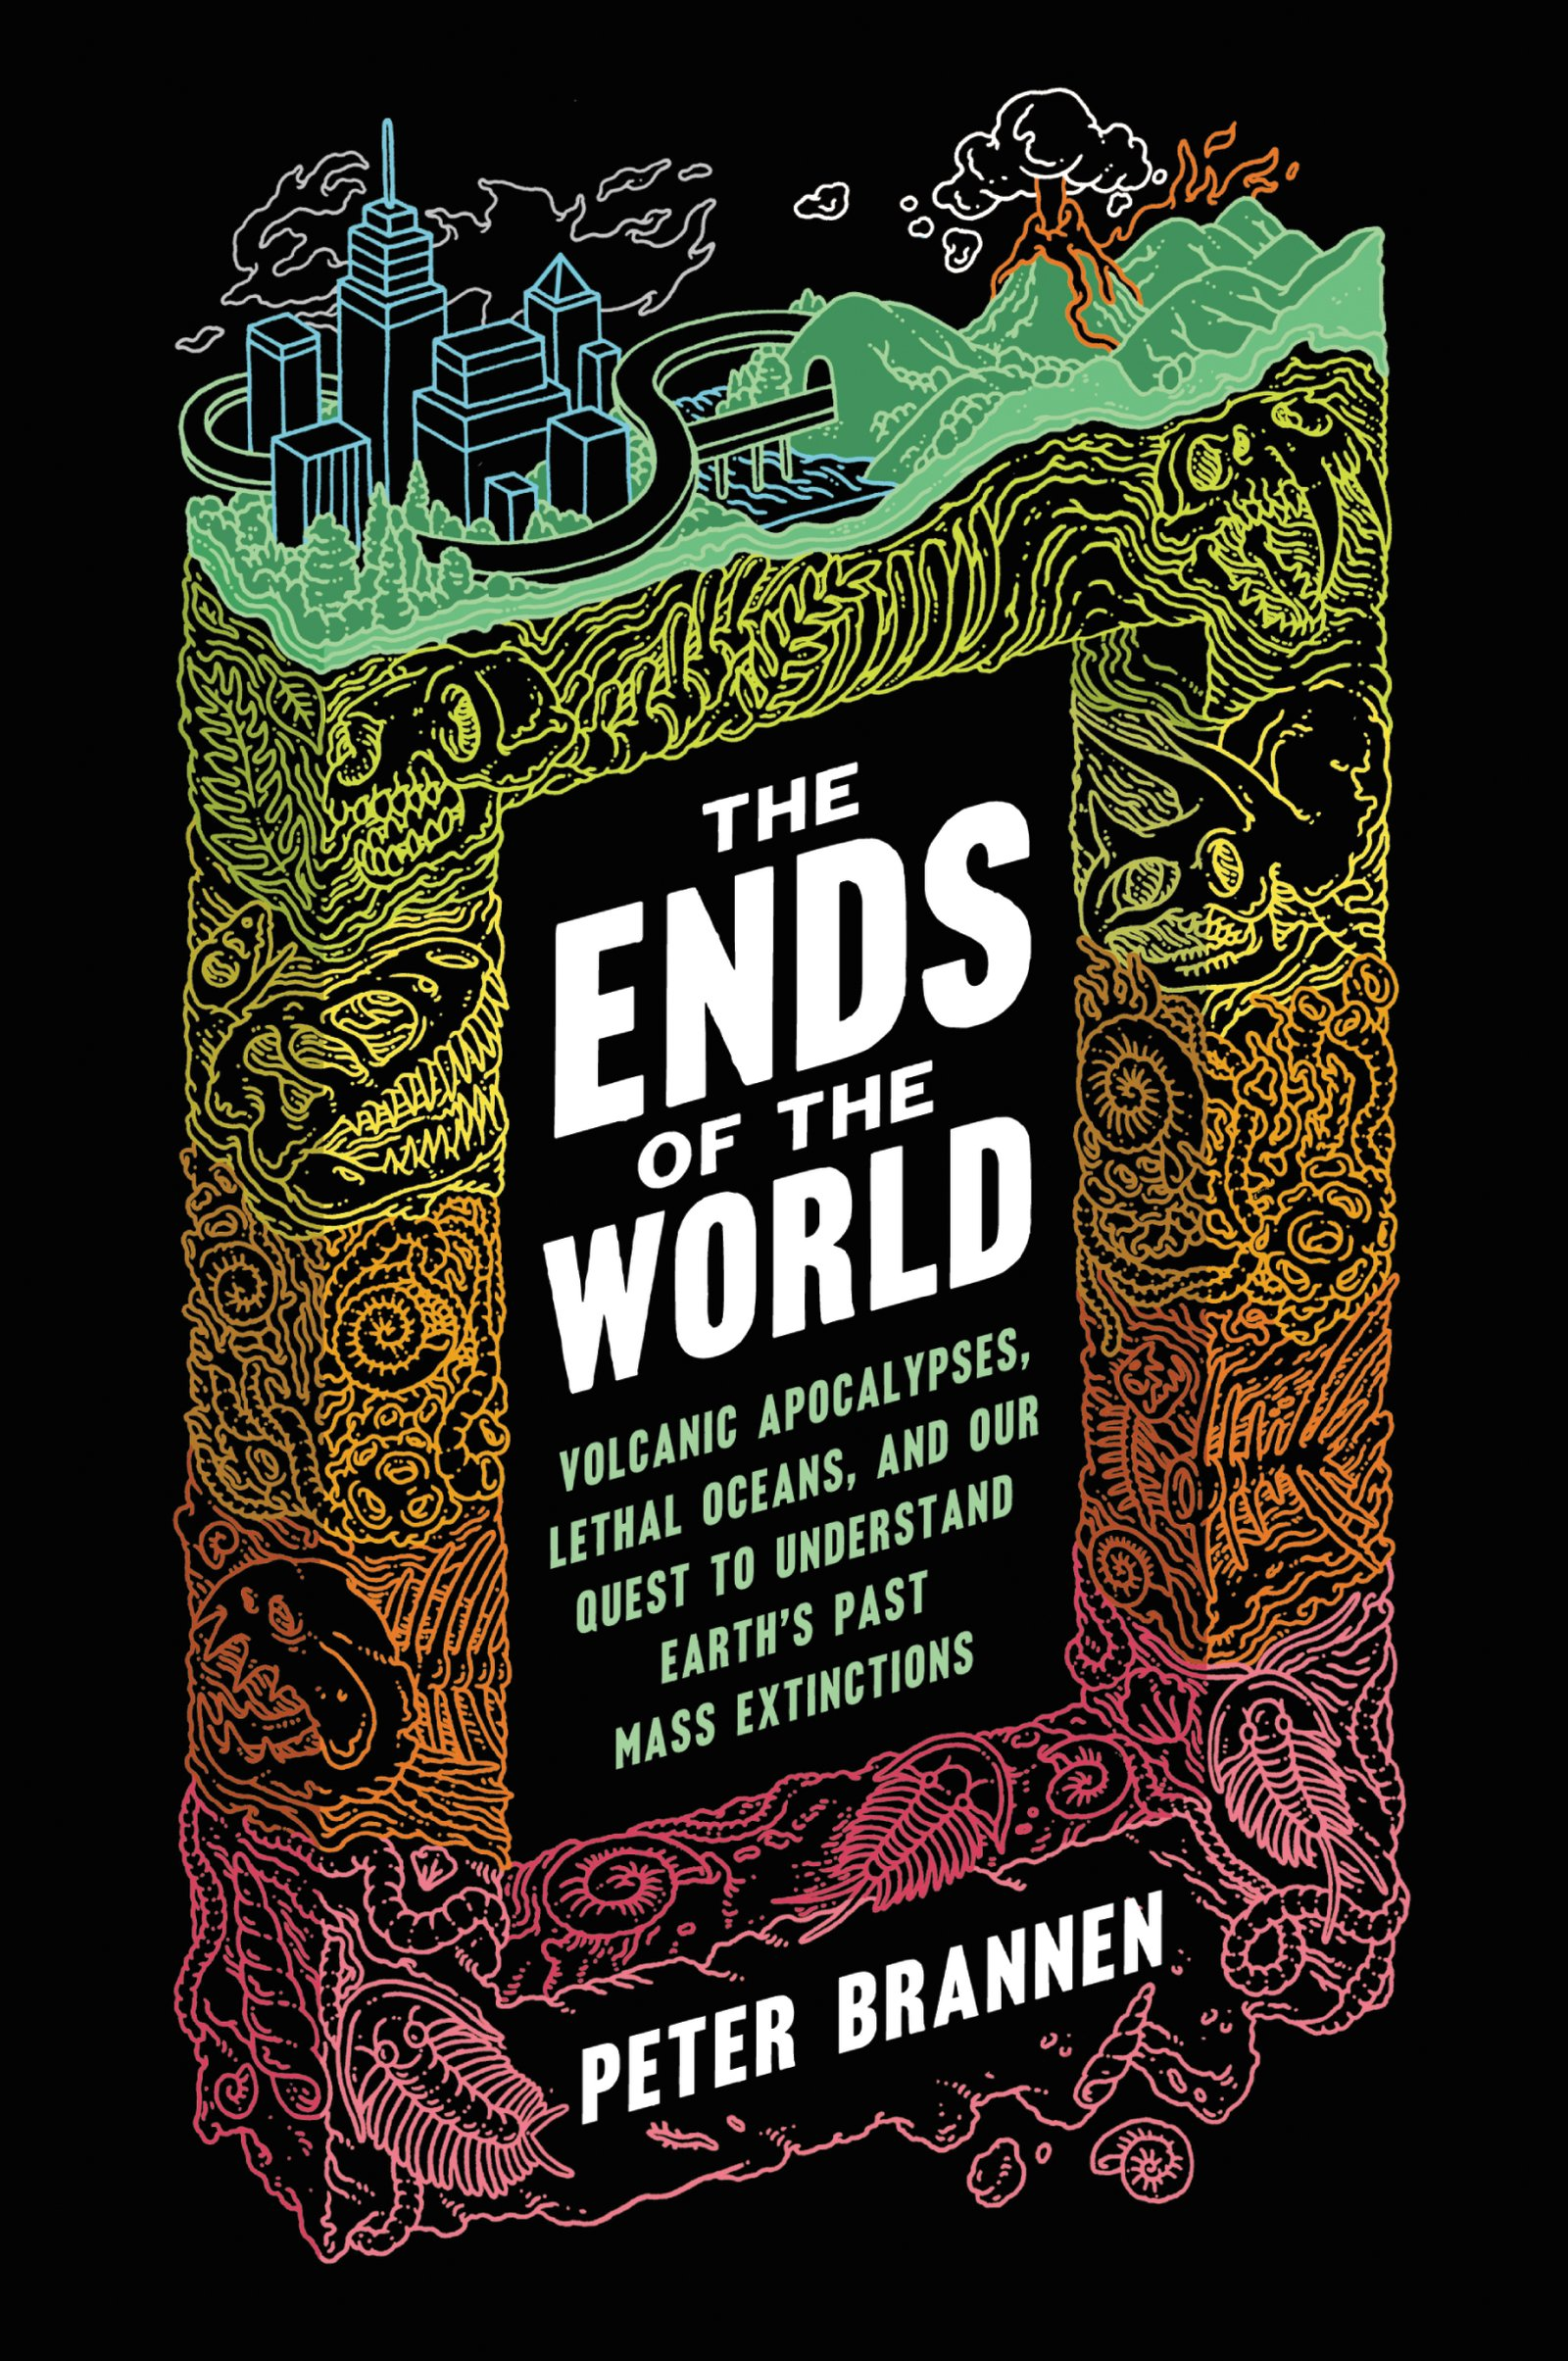 The Ends of the World: Volcanic Apocalypses, Lethal Oceans, and Our Quest to Understand Earth's Past Mass Extinctions pdf